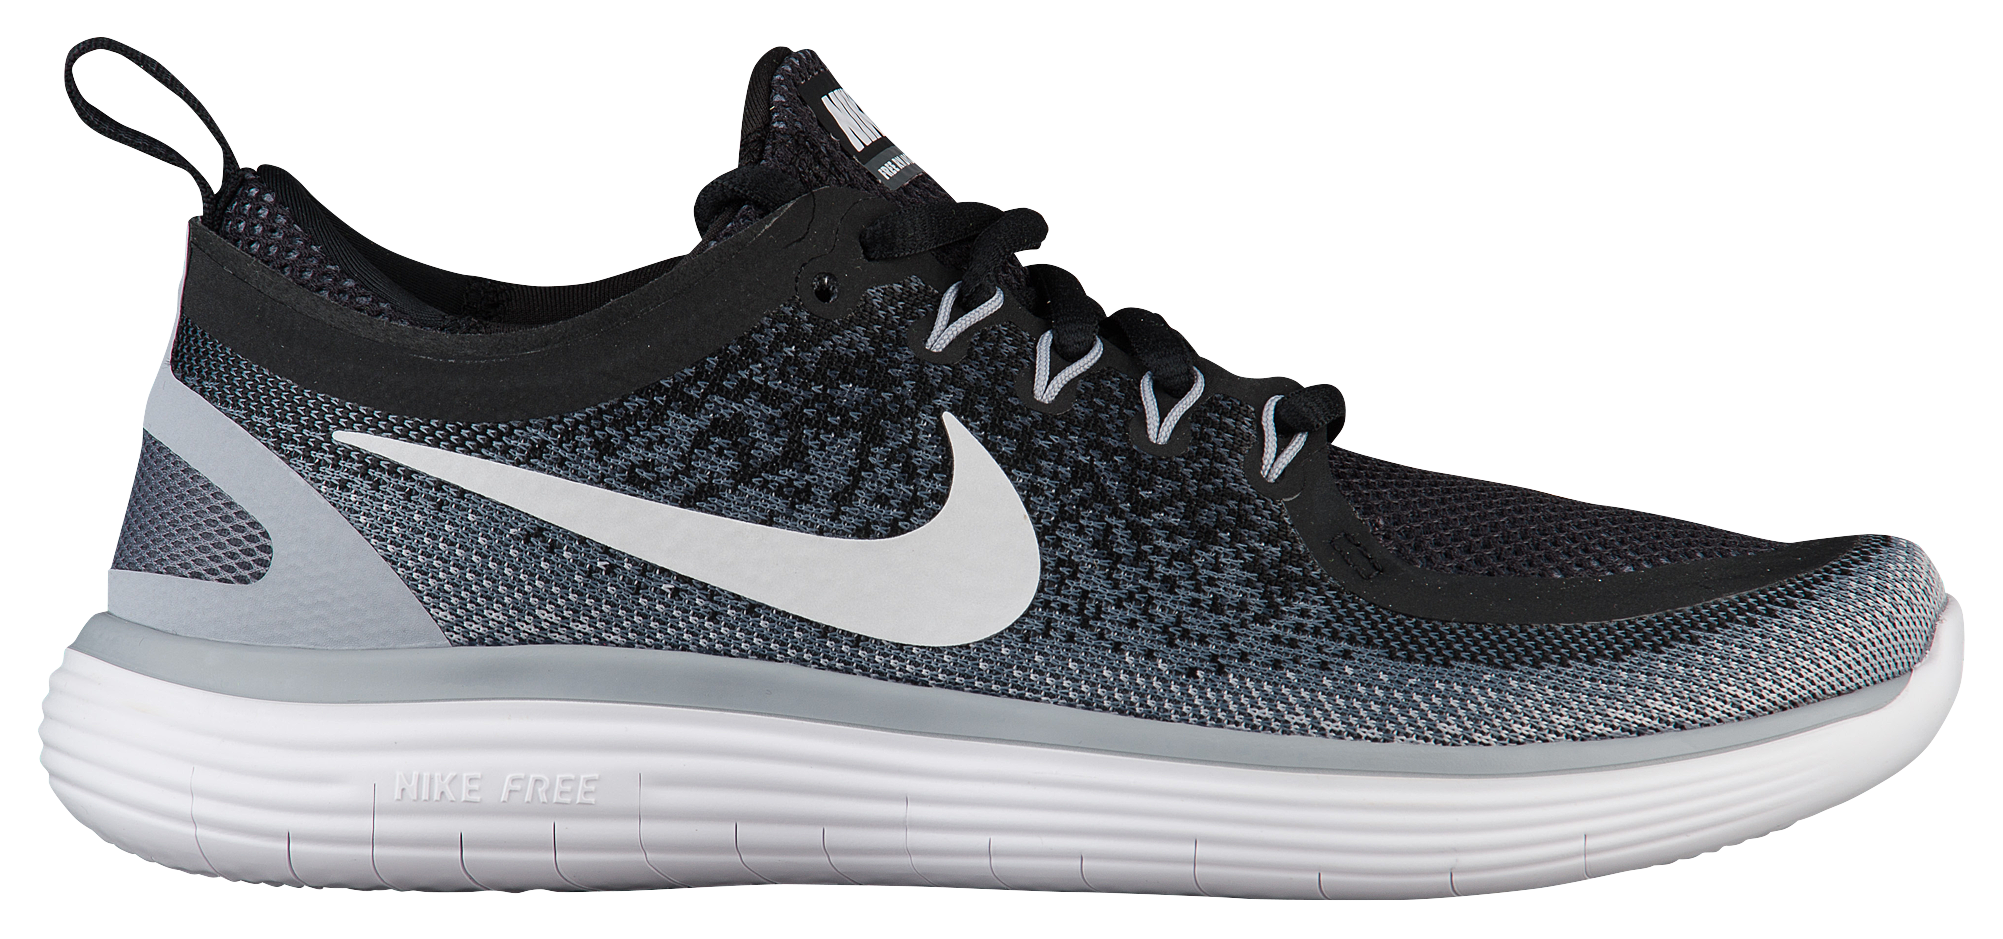 nike womens free fit 3 training shoe black&white clipart